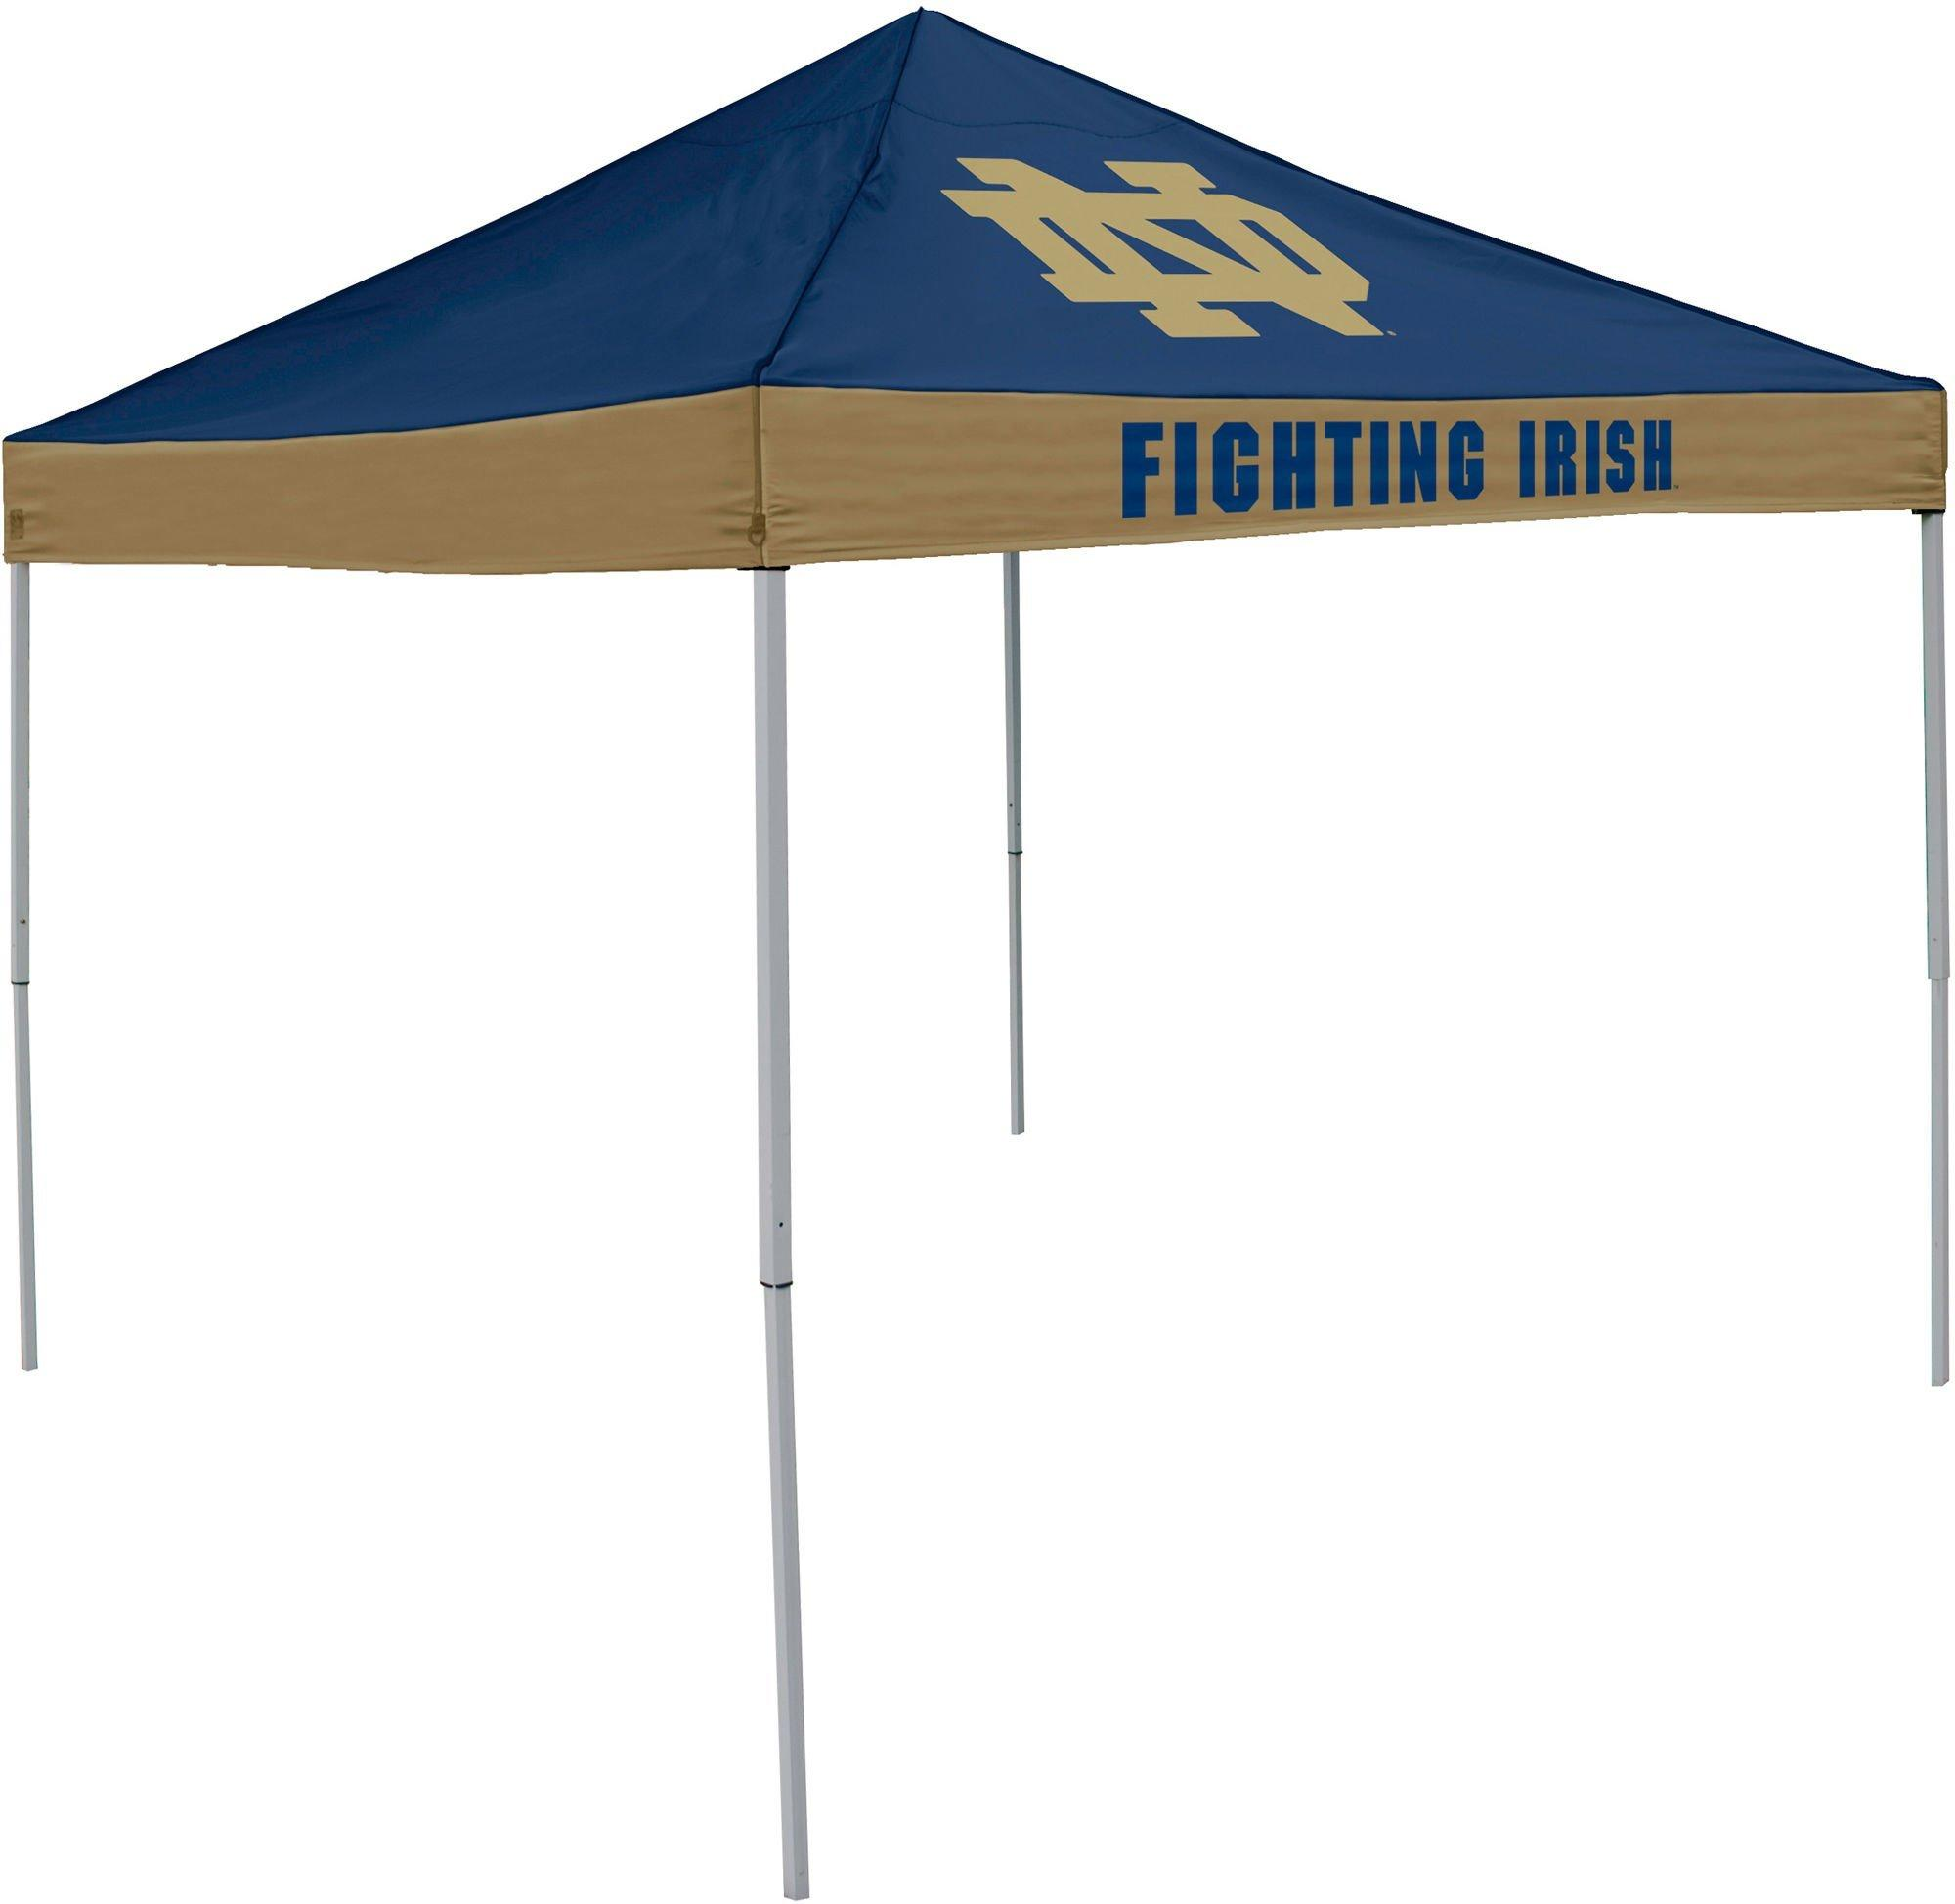 Notre Dame Economy Tent by Logo Brands  sc 1 st  Bealls & LSU Tigers Checkerboard Canopy Tent by Logo Brands | Bealls Florida